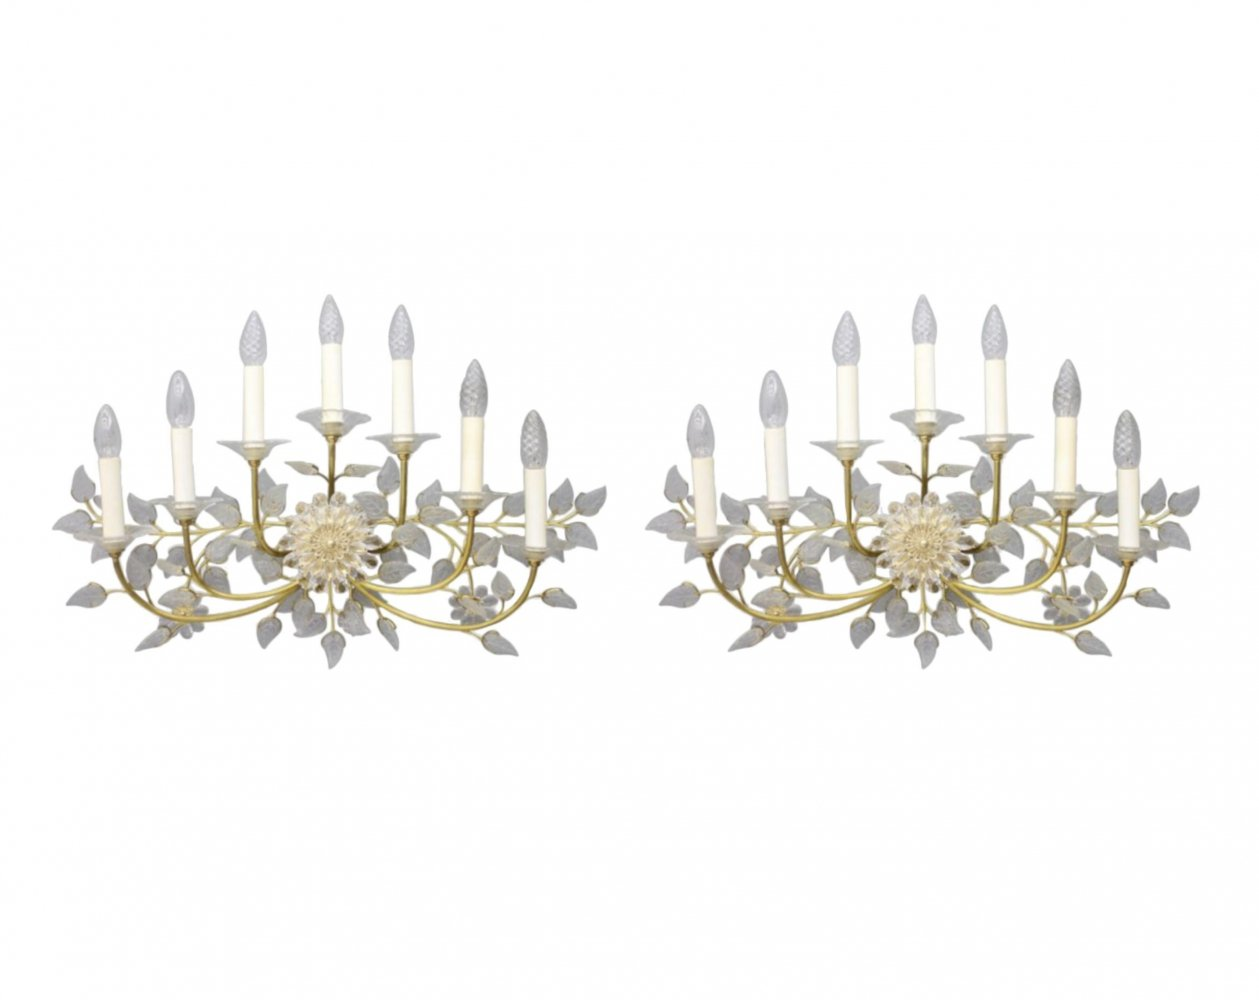 Pair of large Wall Lights by Palwa, 1960s